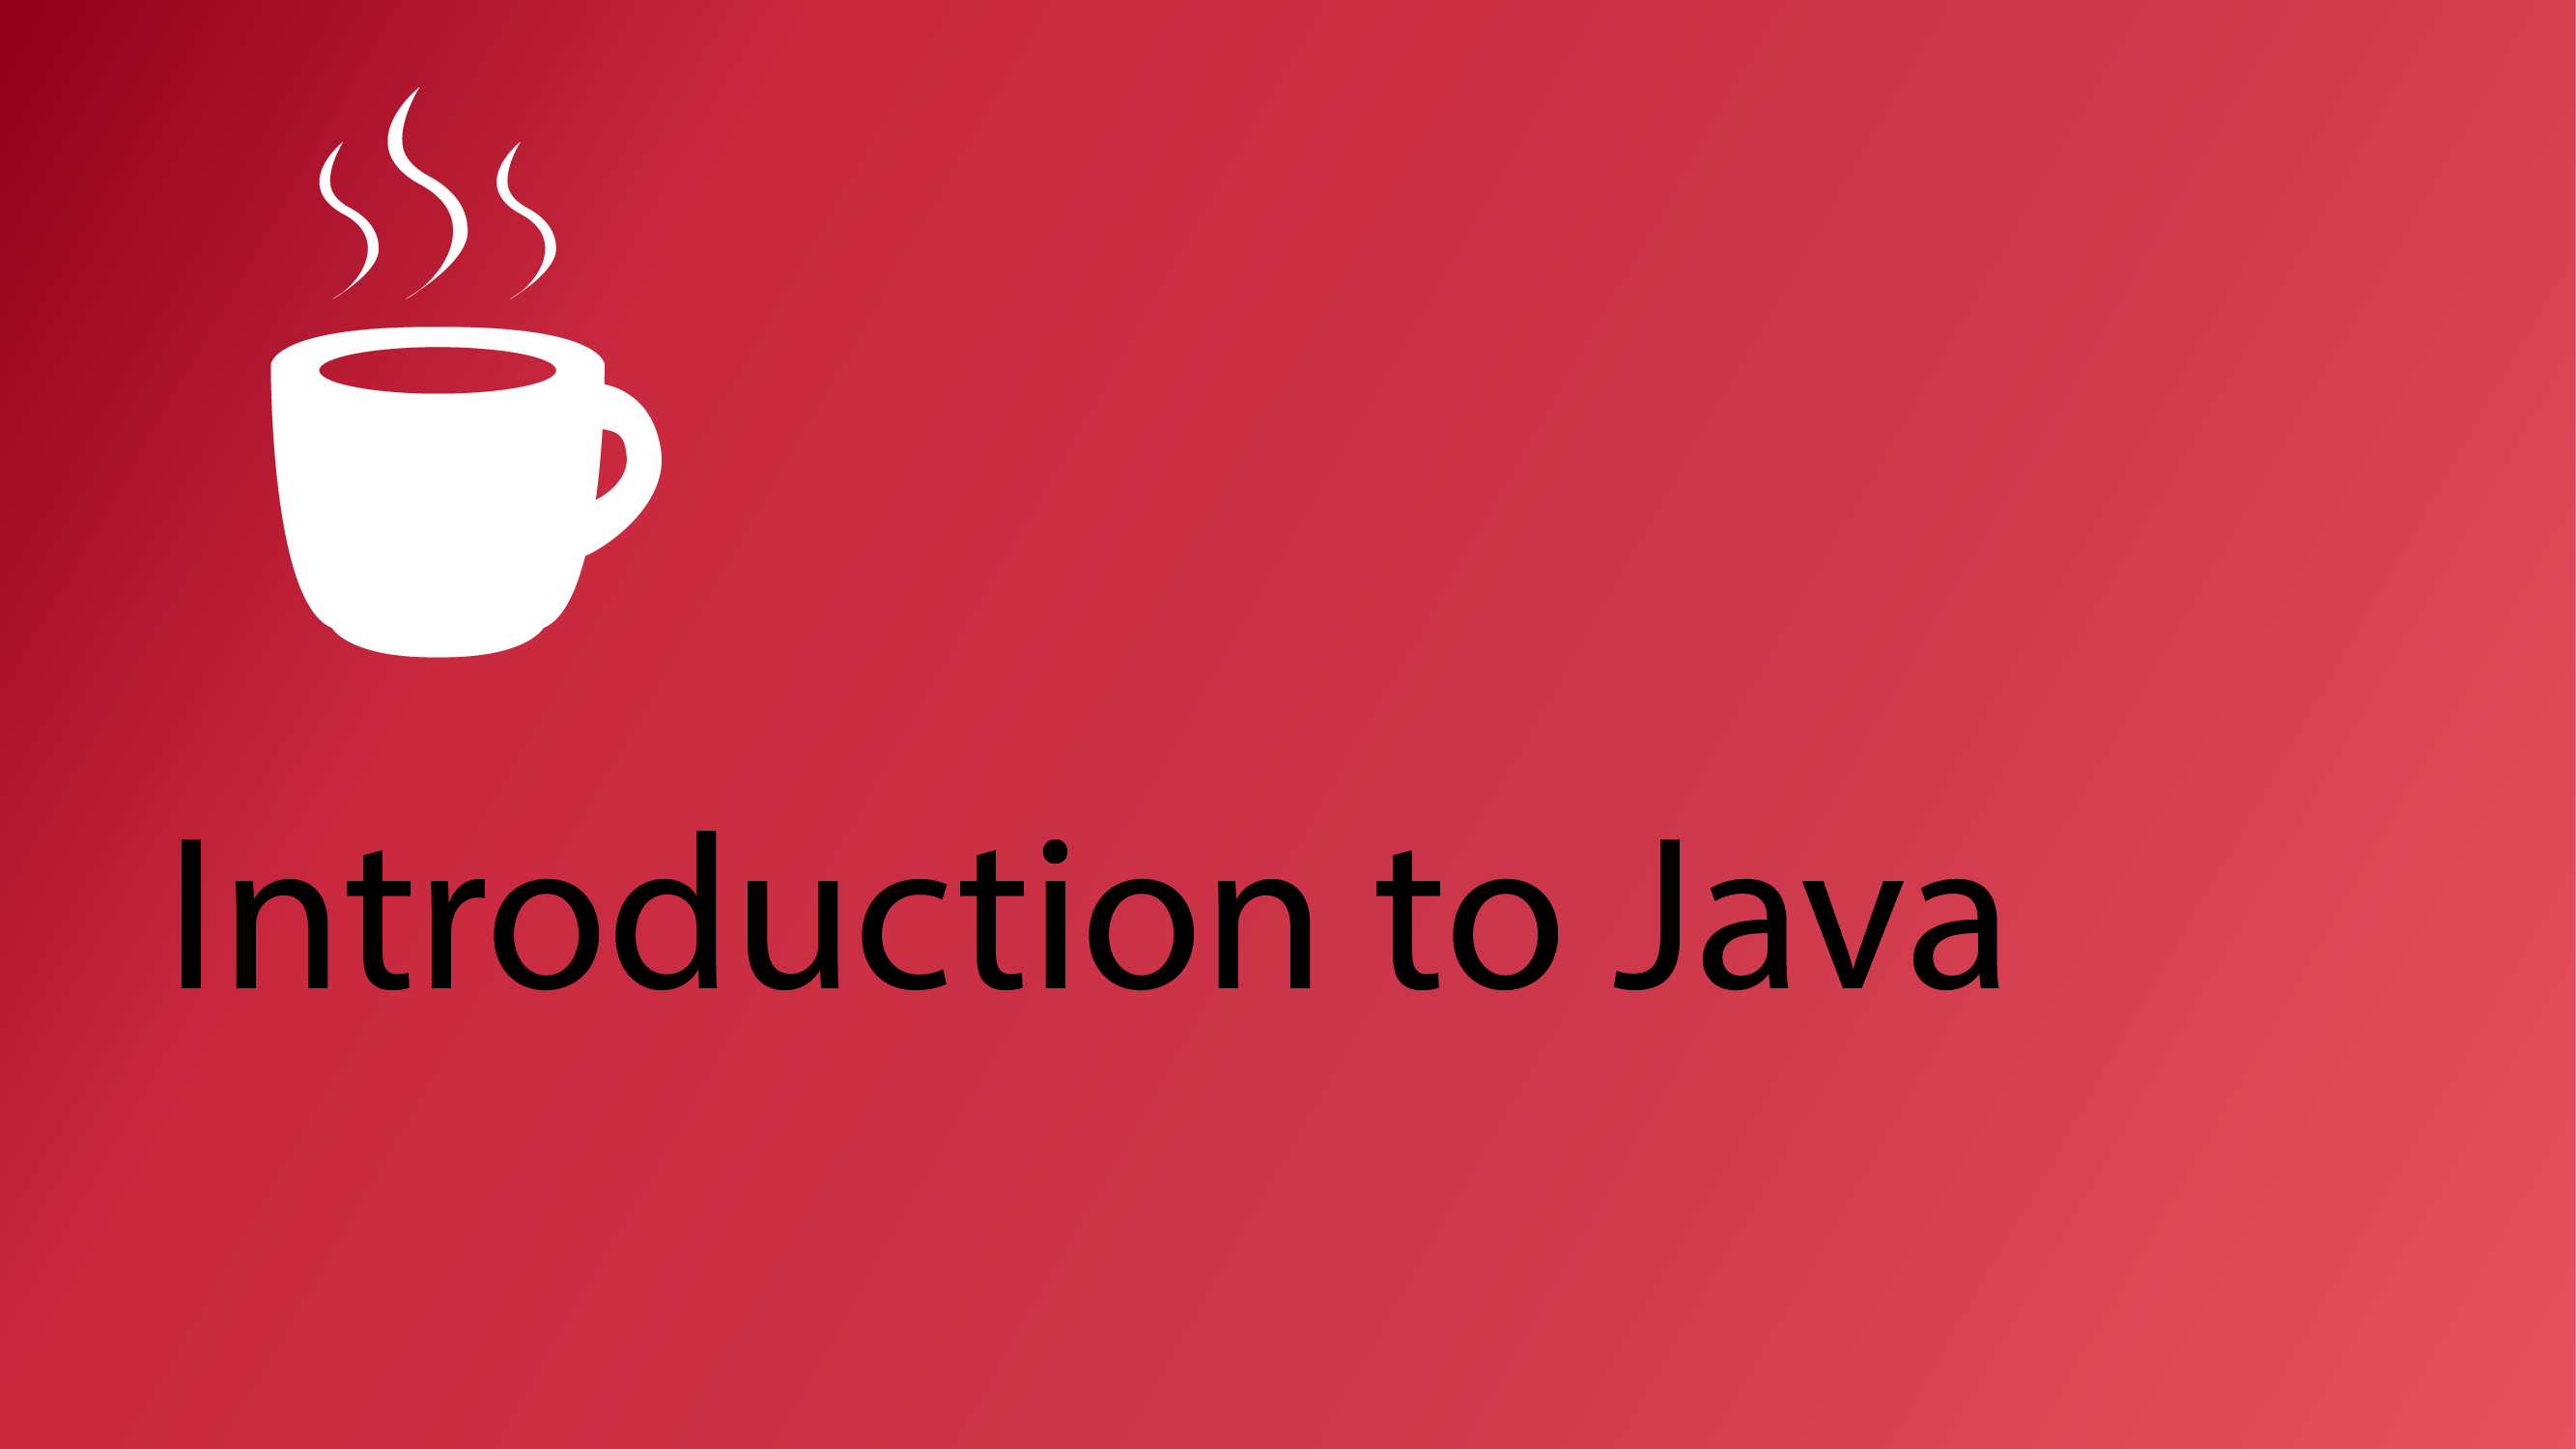 Java tutorials codemahal welcome to the java programming tutorial series this series will teach you the fundamentals of coding in the java language and object oriented programming baditri Gallery